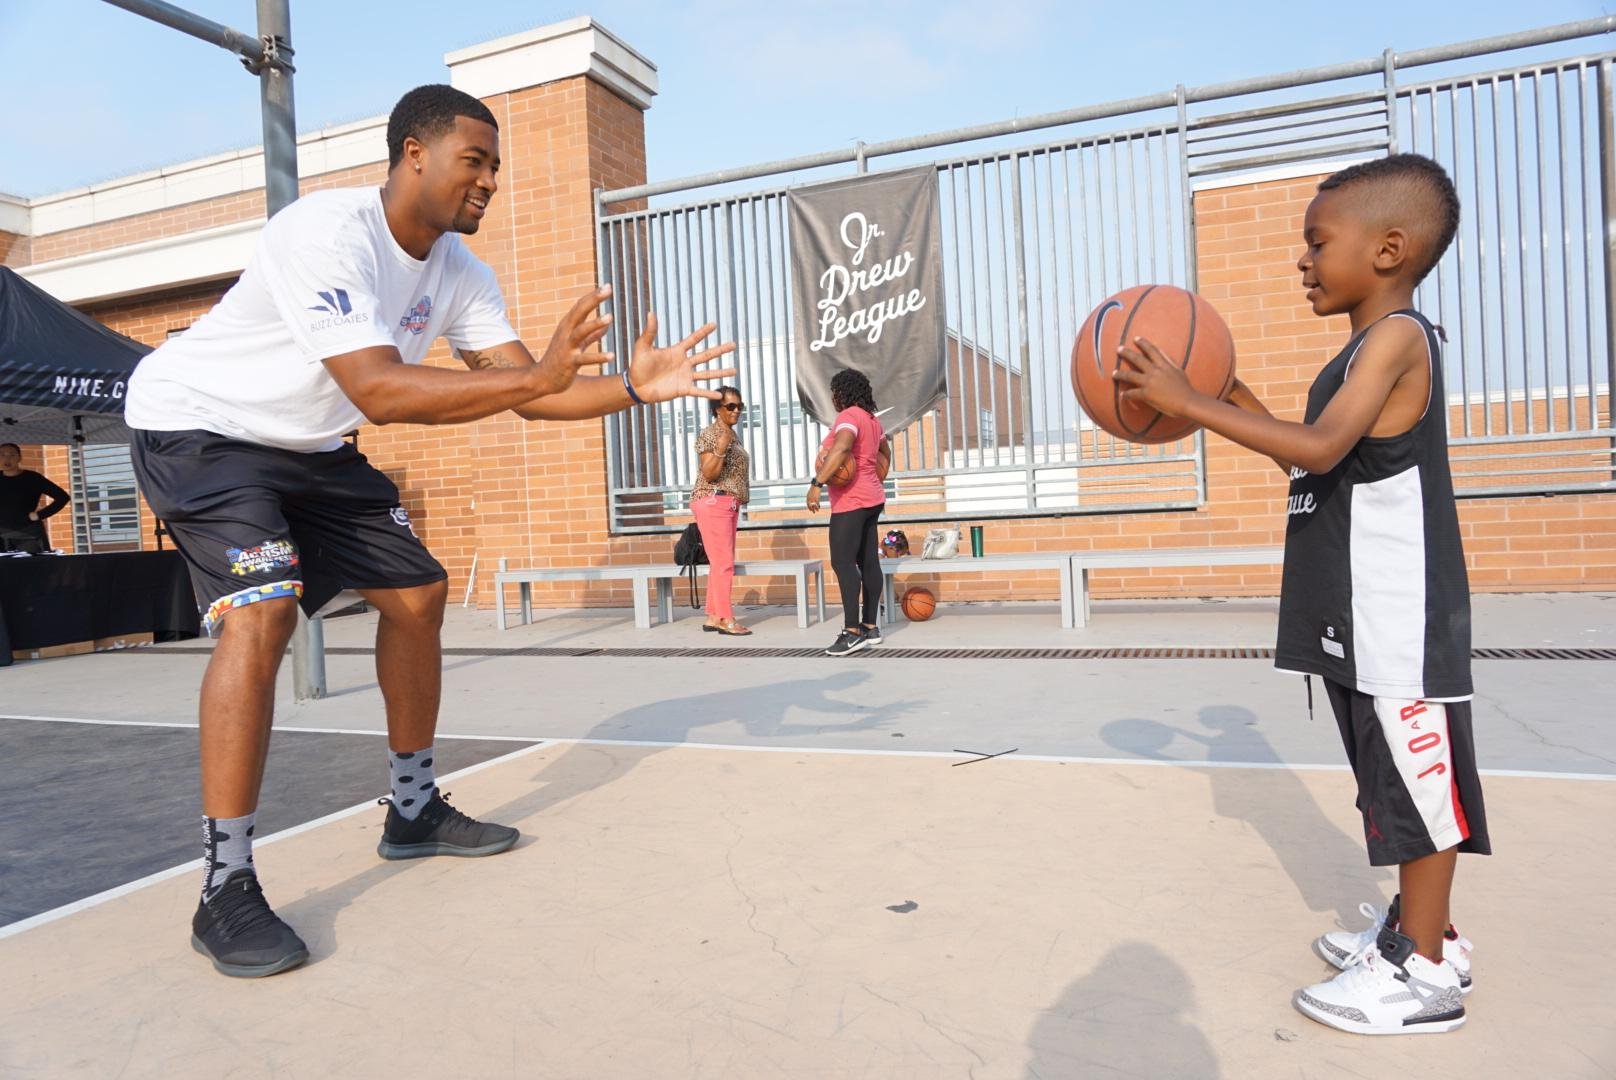 8-WEEK ADAPTIVE BASKETBALL CLASS FOR KIDS ON THE AUTISIM SPECTRUM